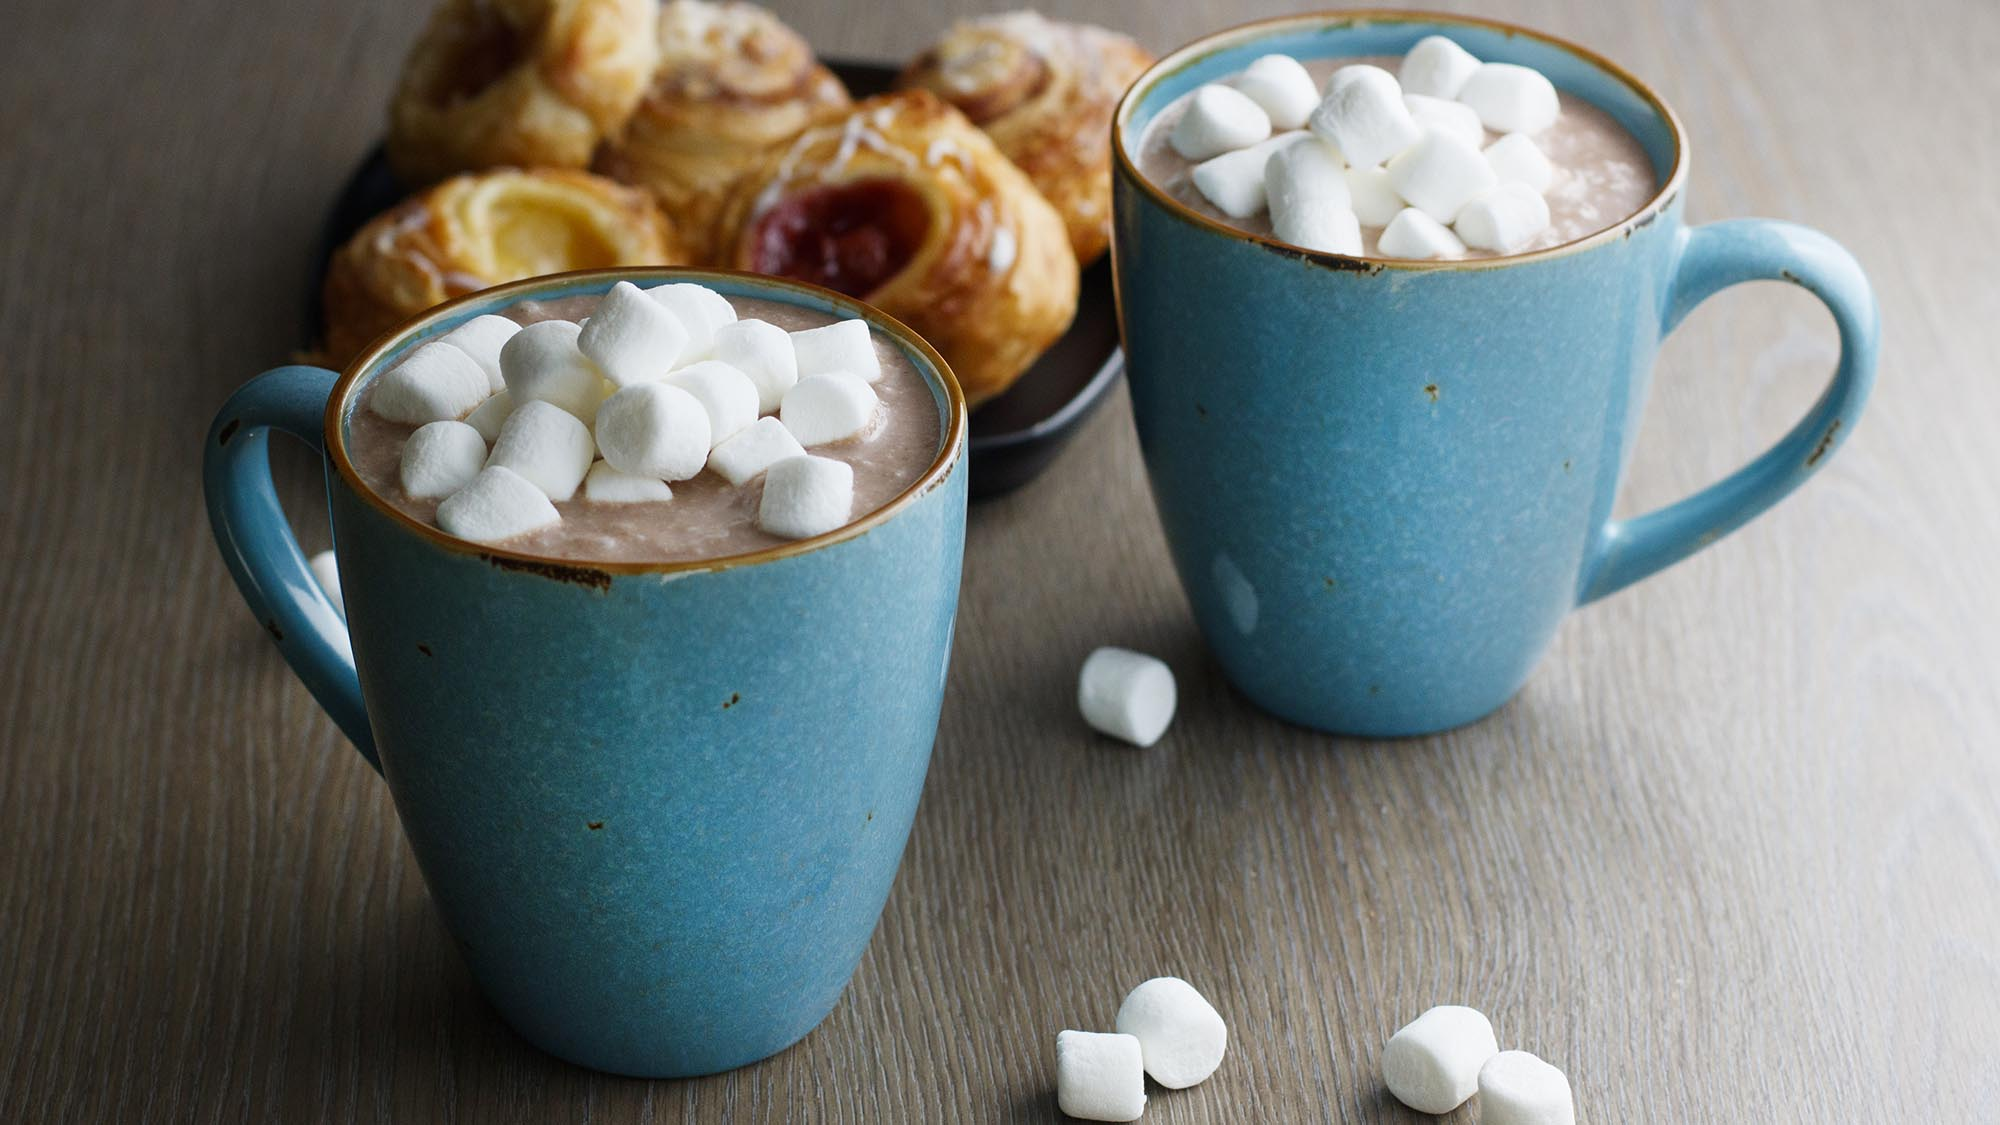 McCormick Hot Chocolate